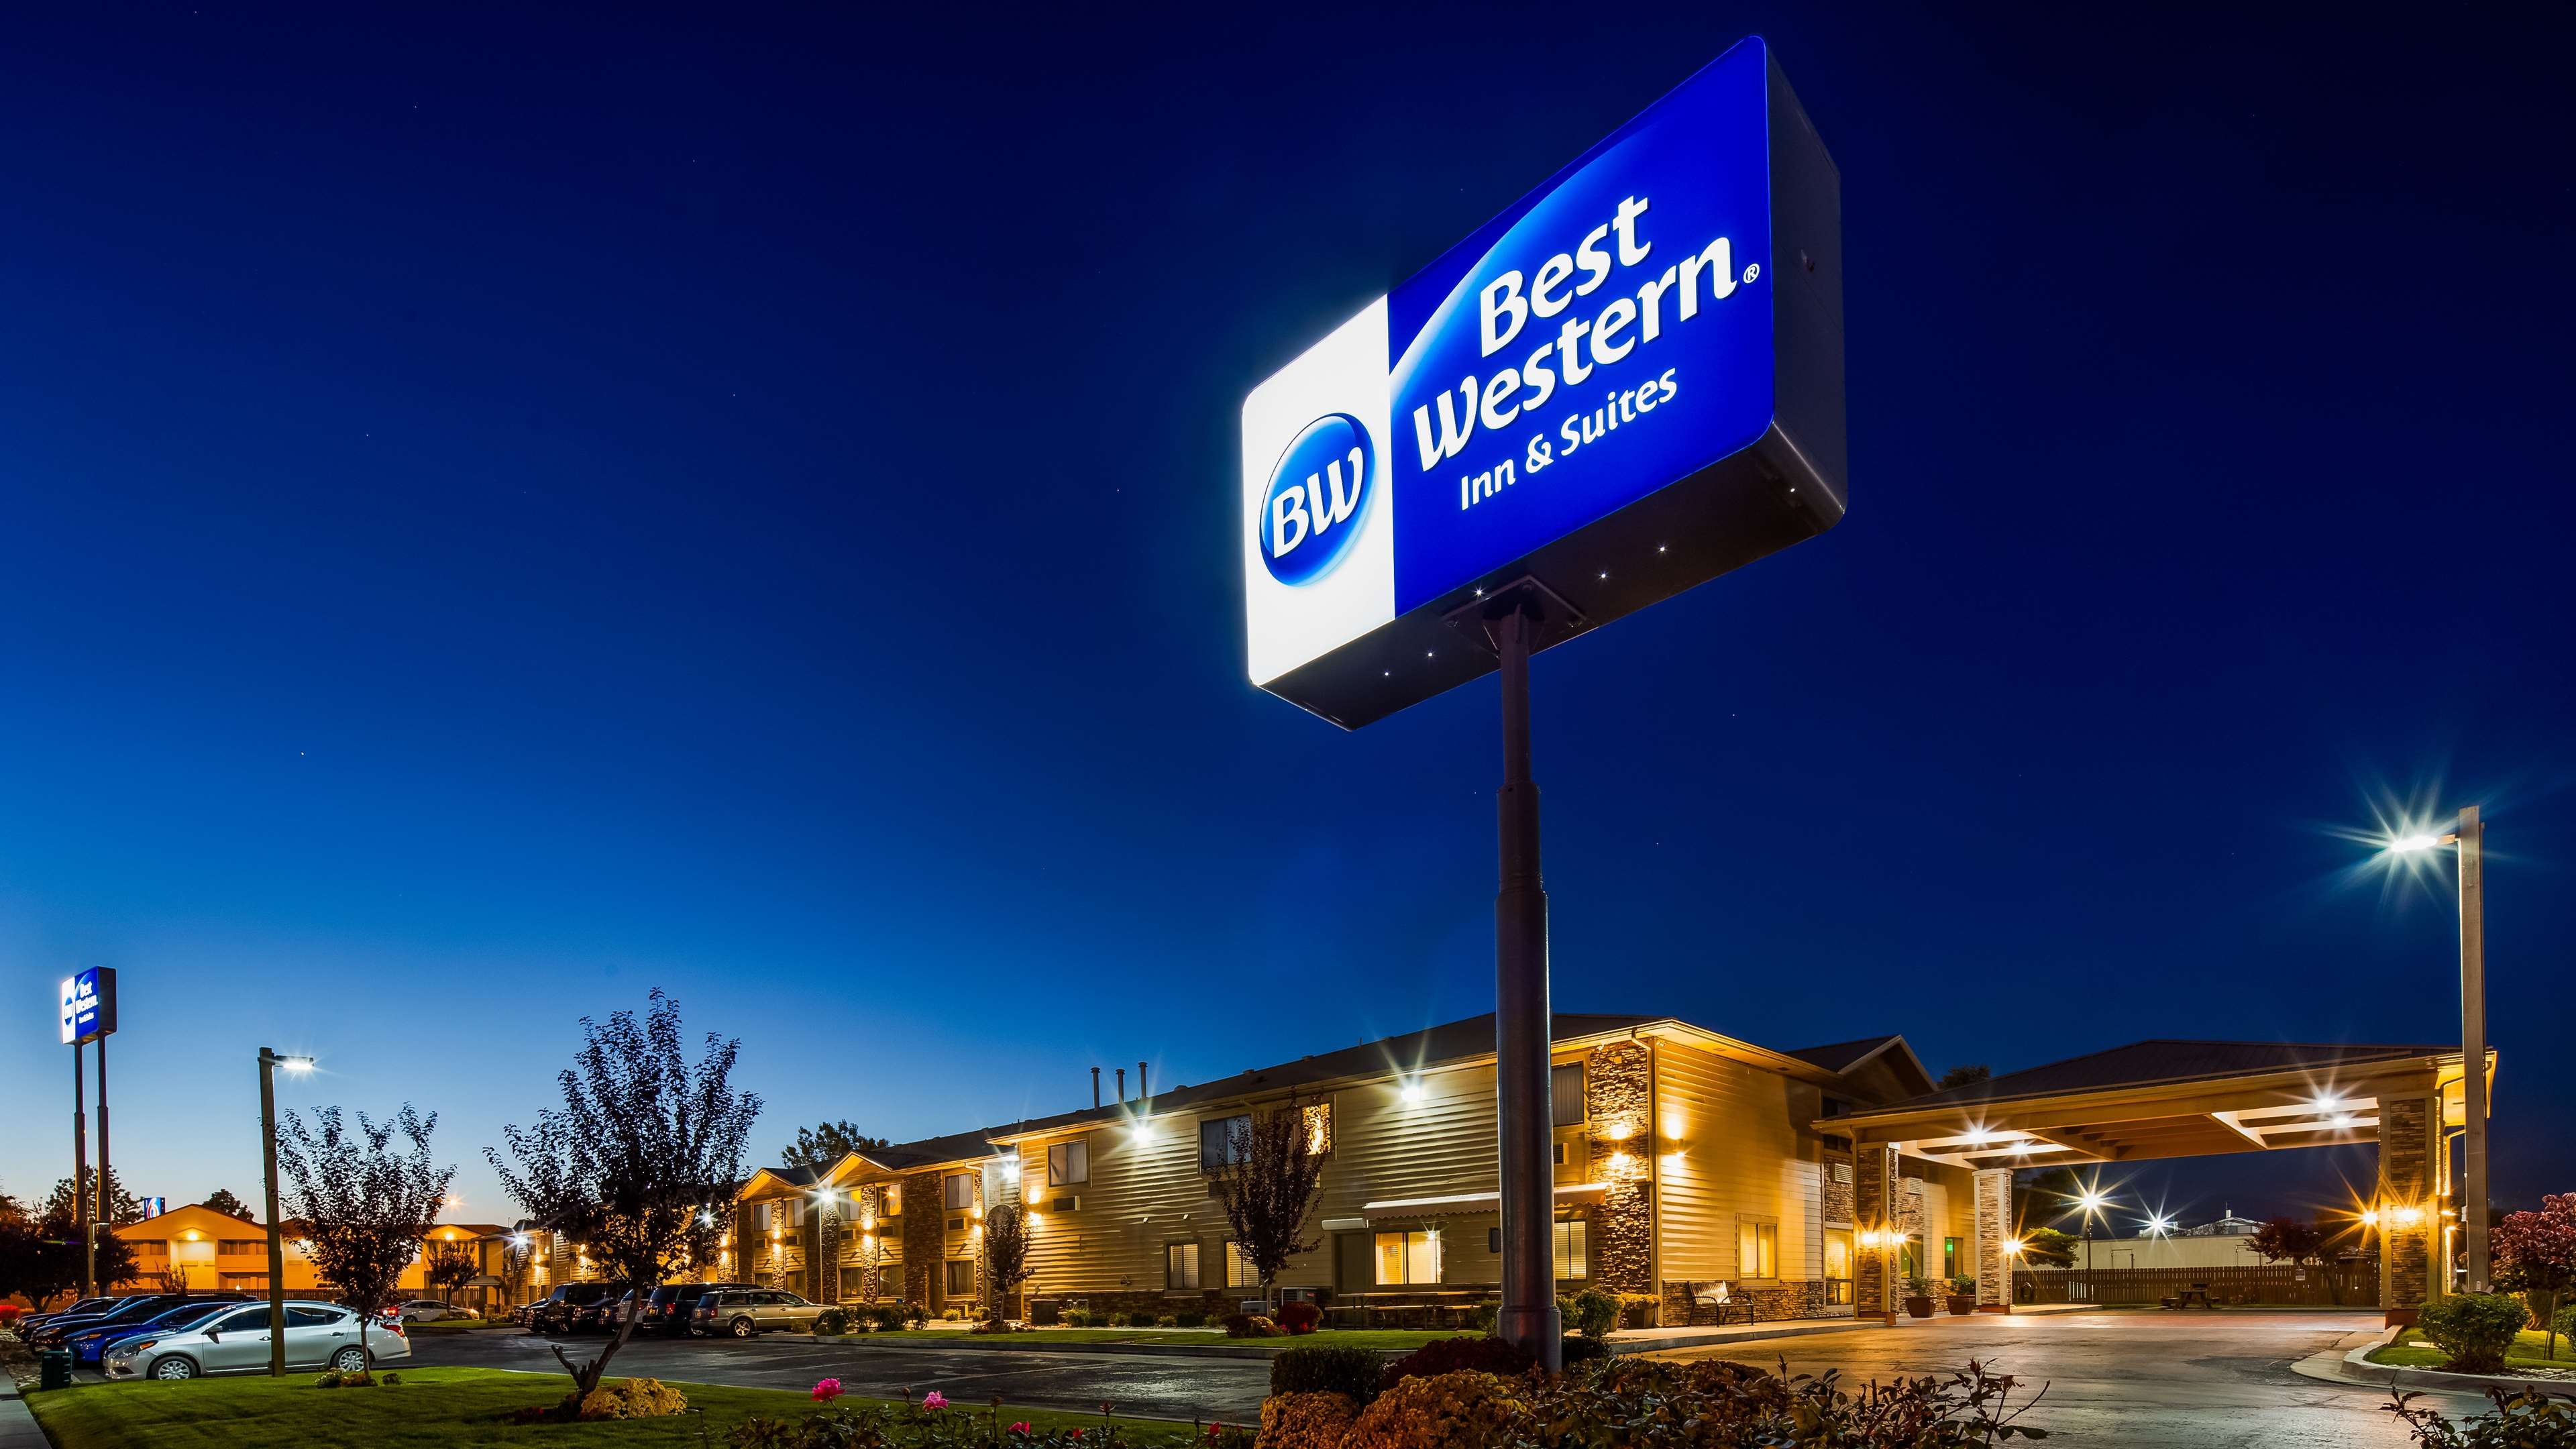 Best Western Inn & Suites image 0